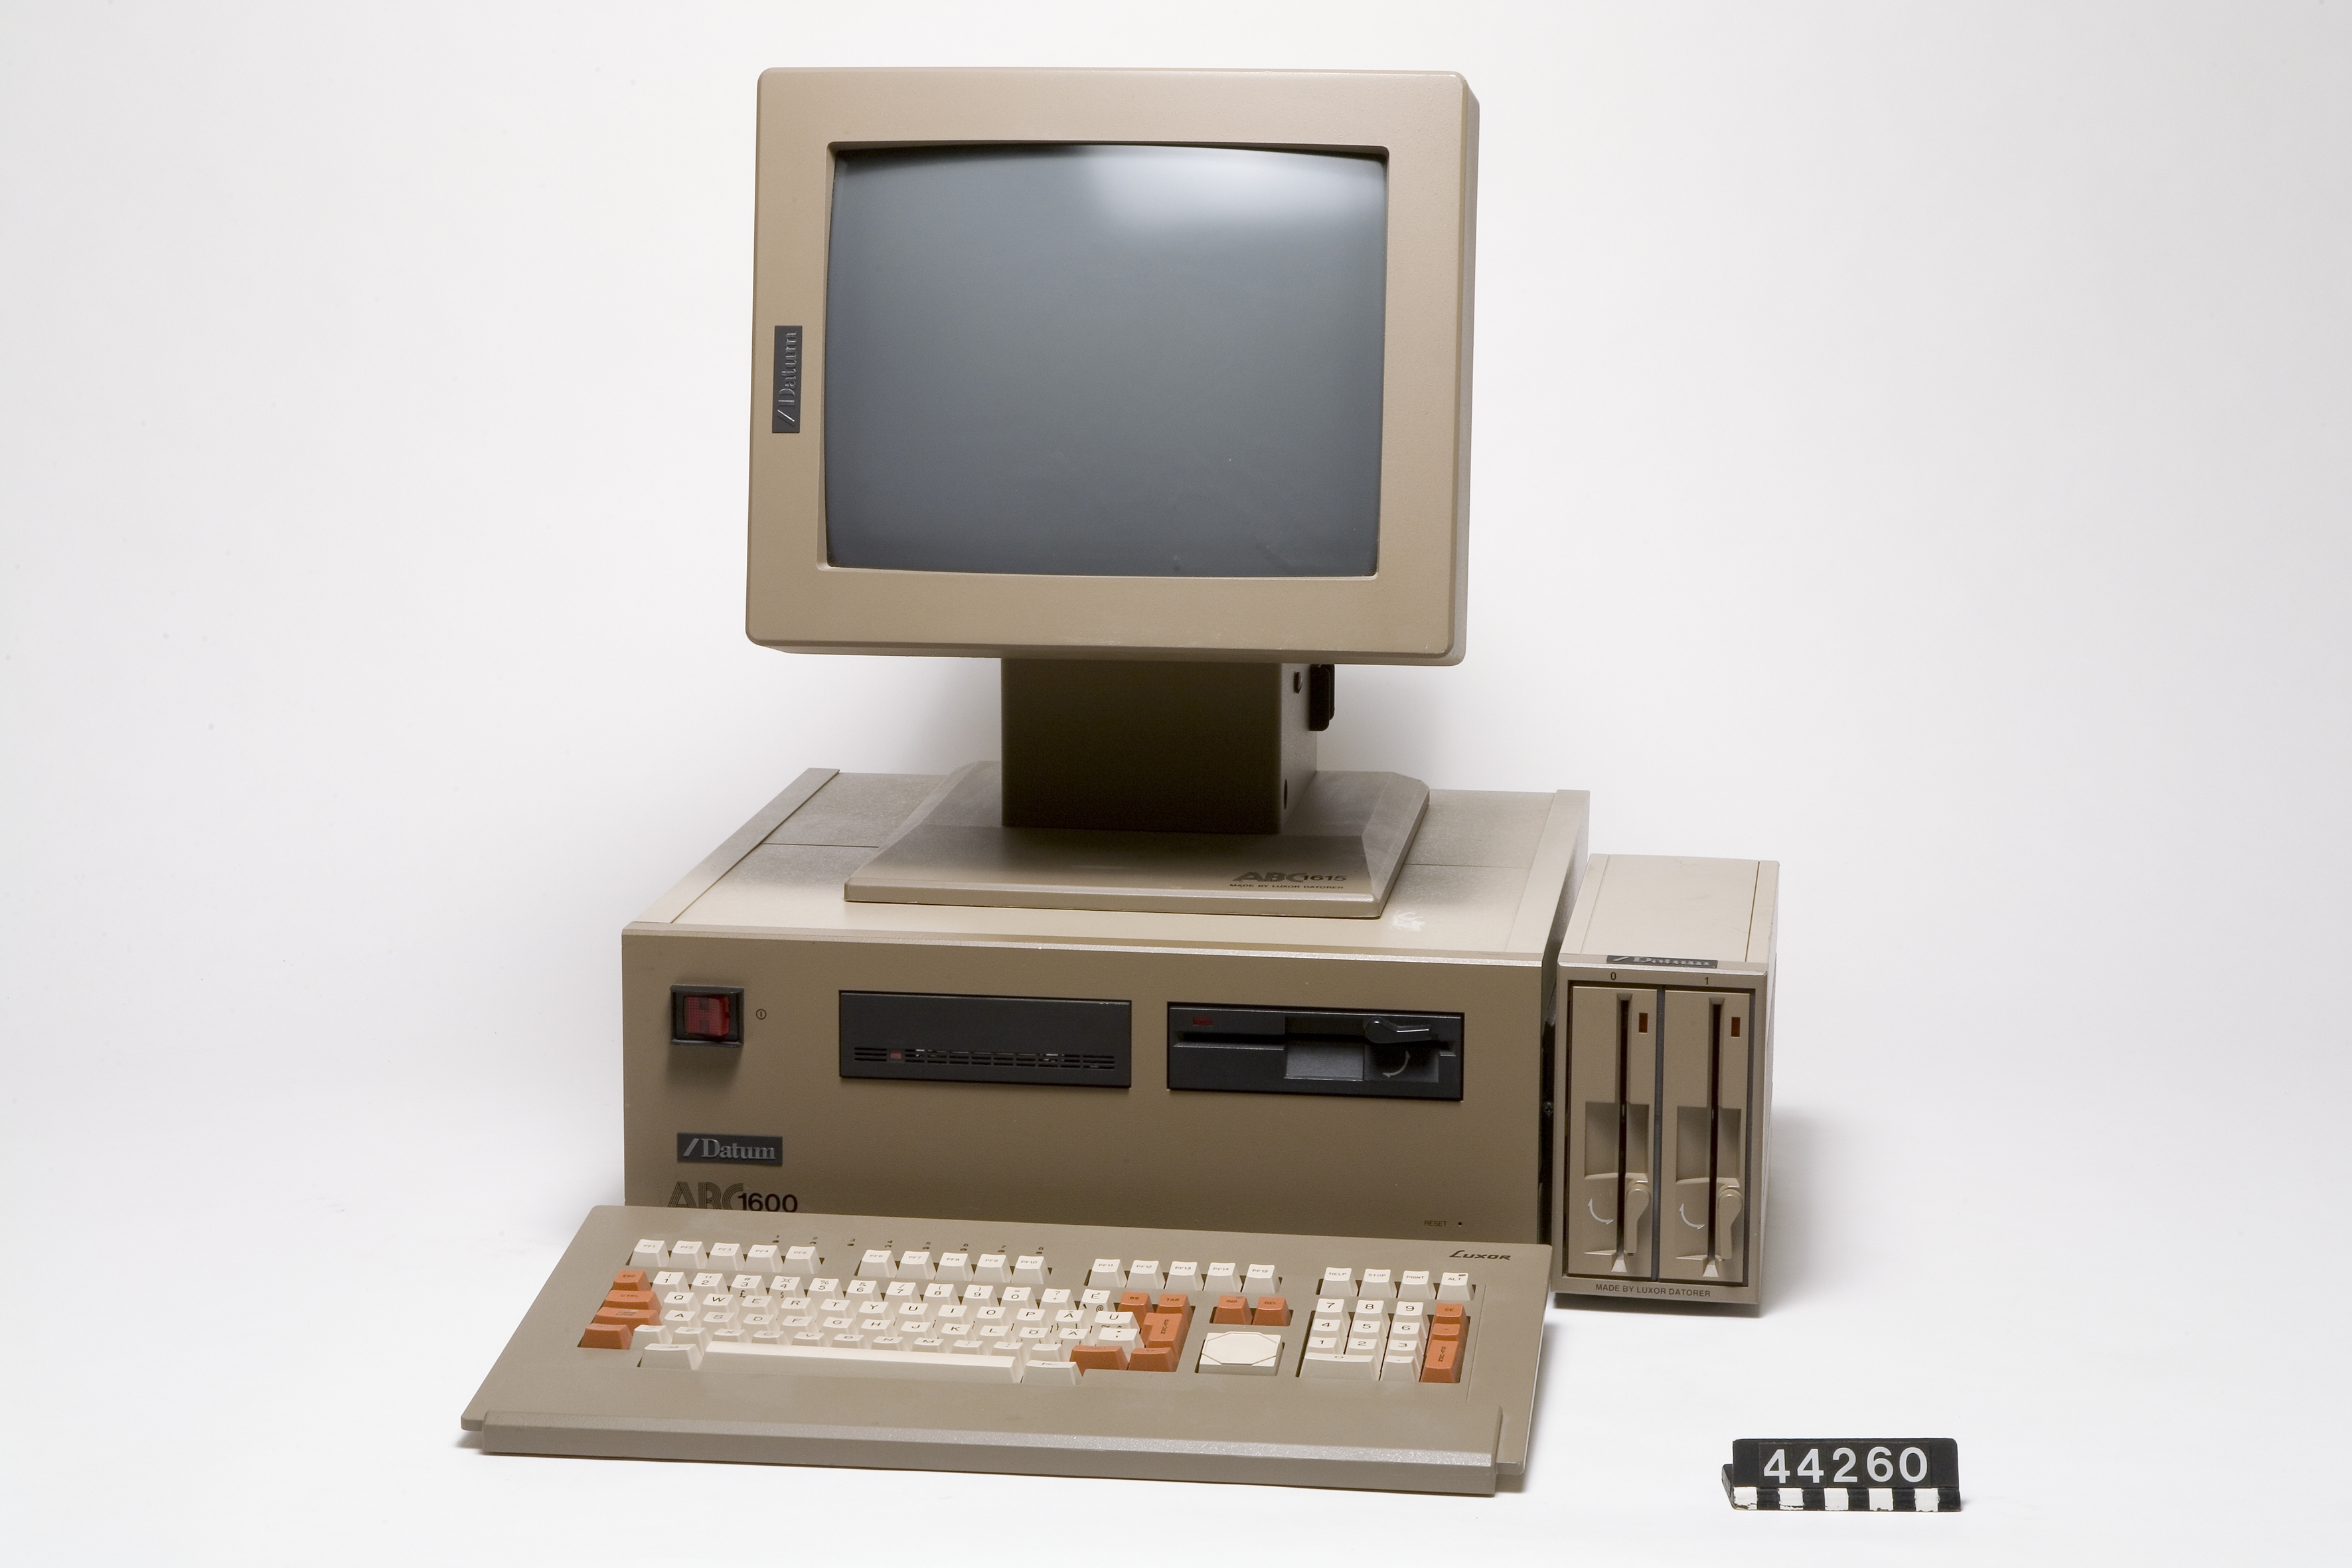 English The ABC 1600 Personal computer